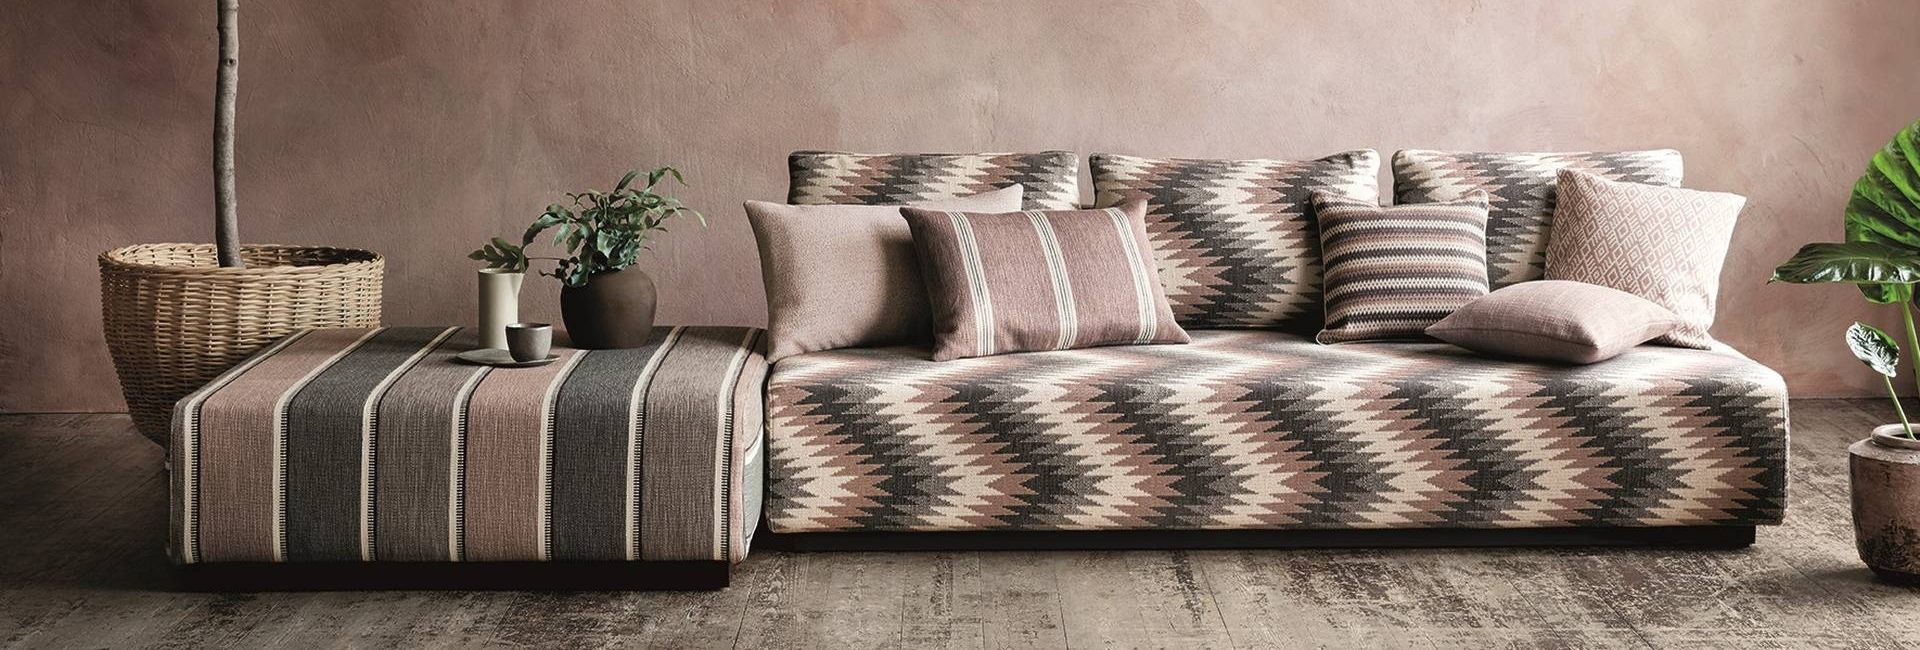 Romo Soraya fabric collection covering a sofa and stool - available from Fabric Gallery and Interiors in Dunnington, York